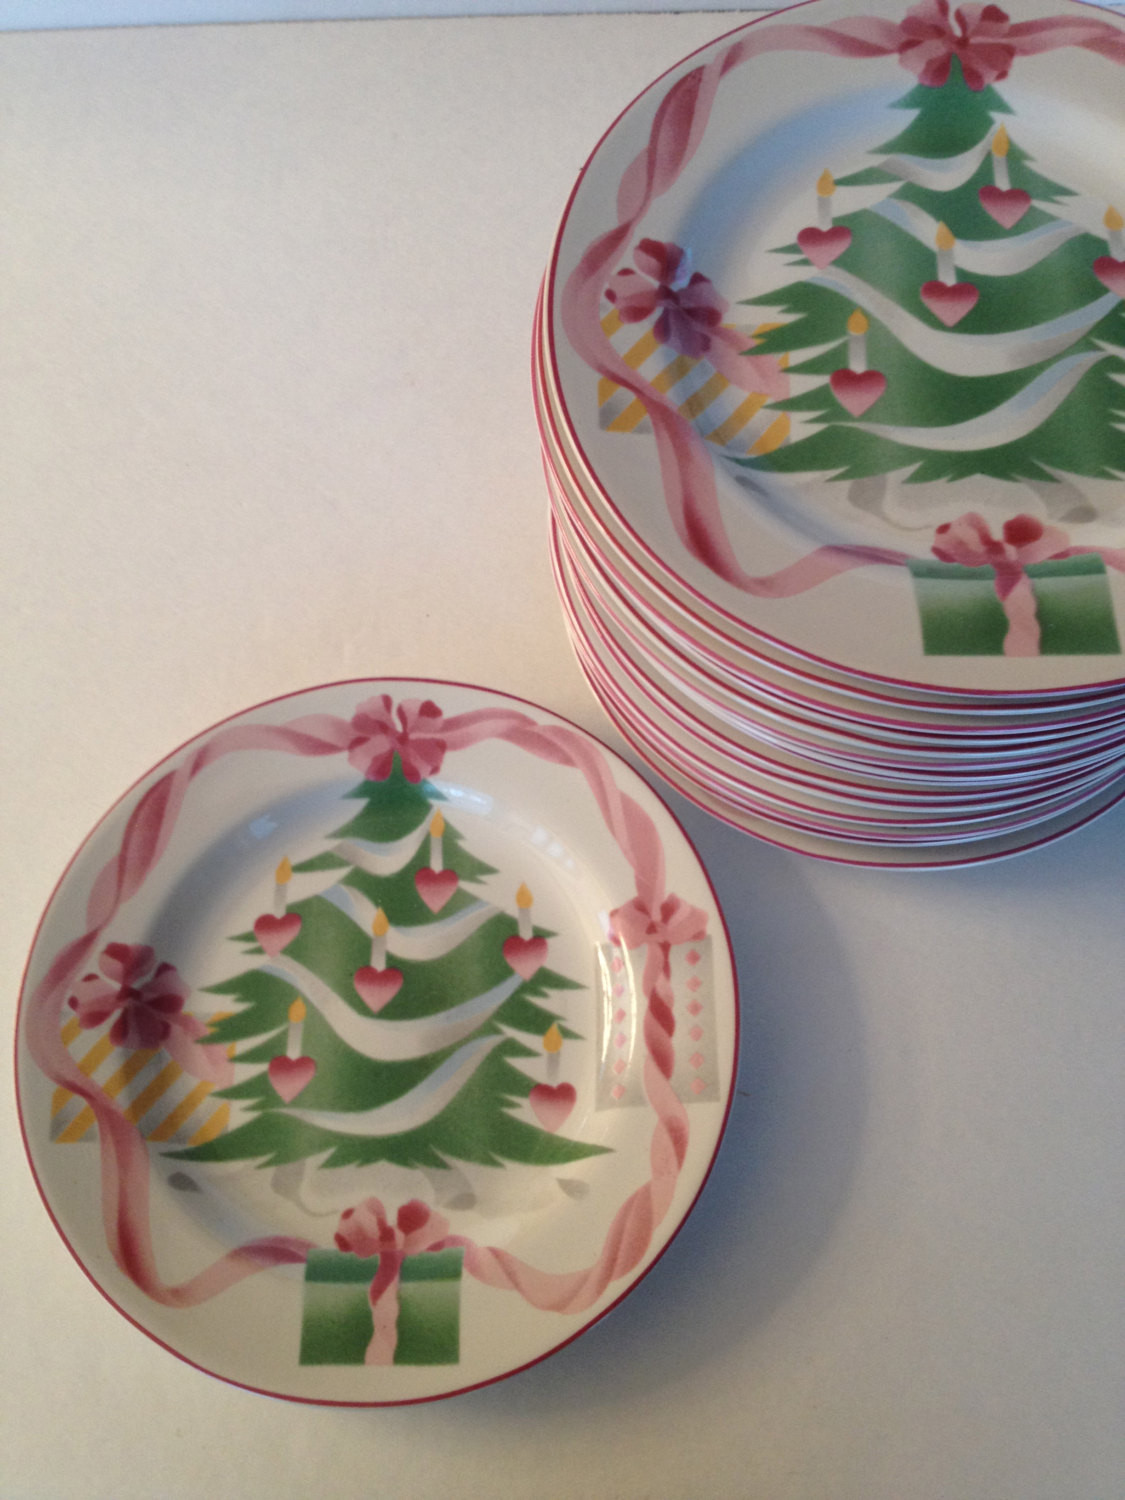 Christmas Dinner Plates  Christmas Dinner Plates Green Pink by Sango 10 Available